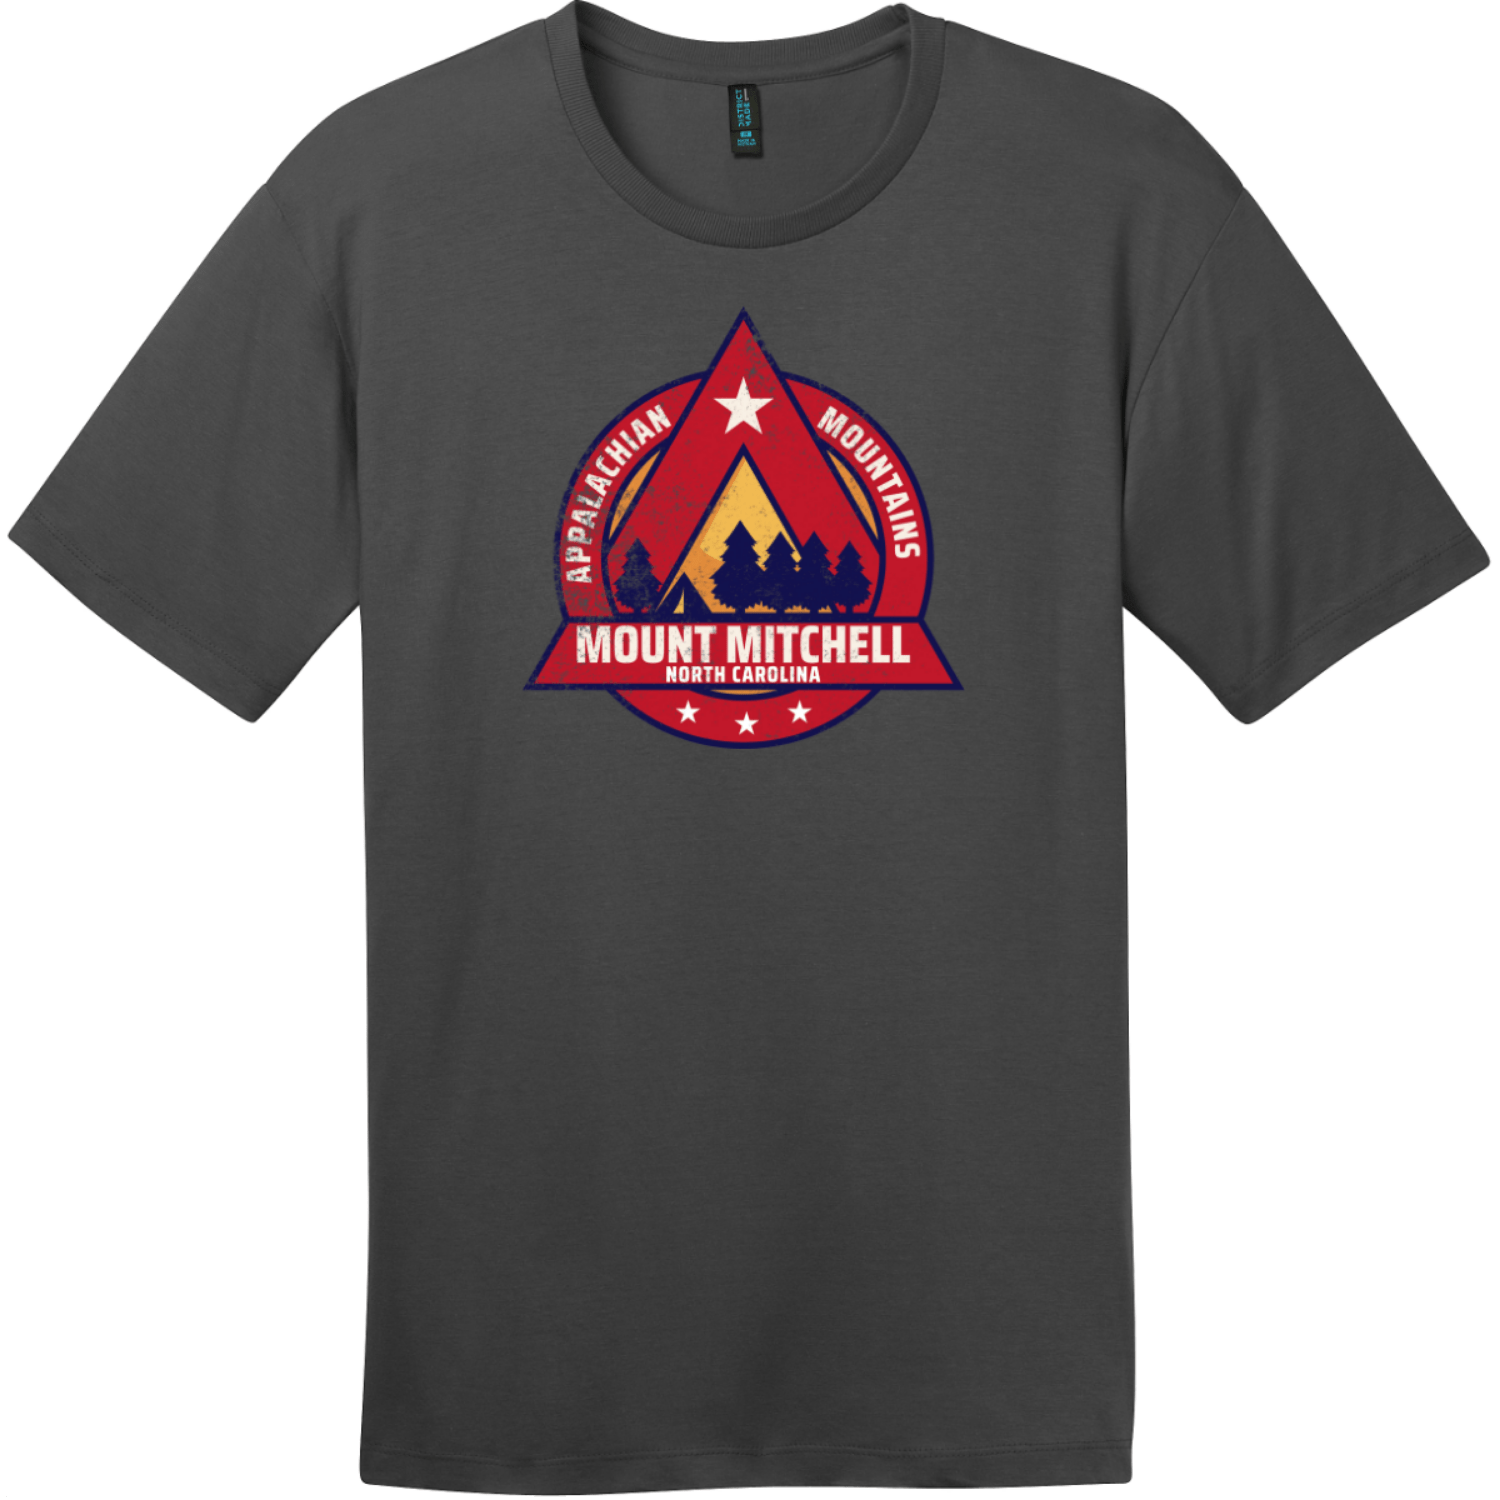 Mount Mitchell North Carolina Camping T-Shirt Charcoal District Perfect Weight Tee DT104